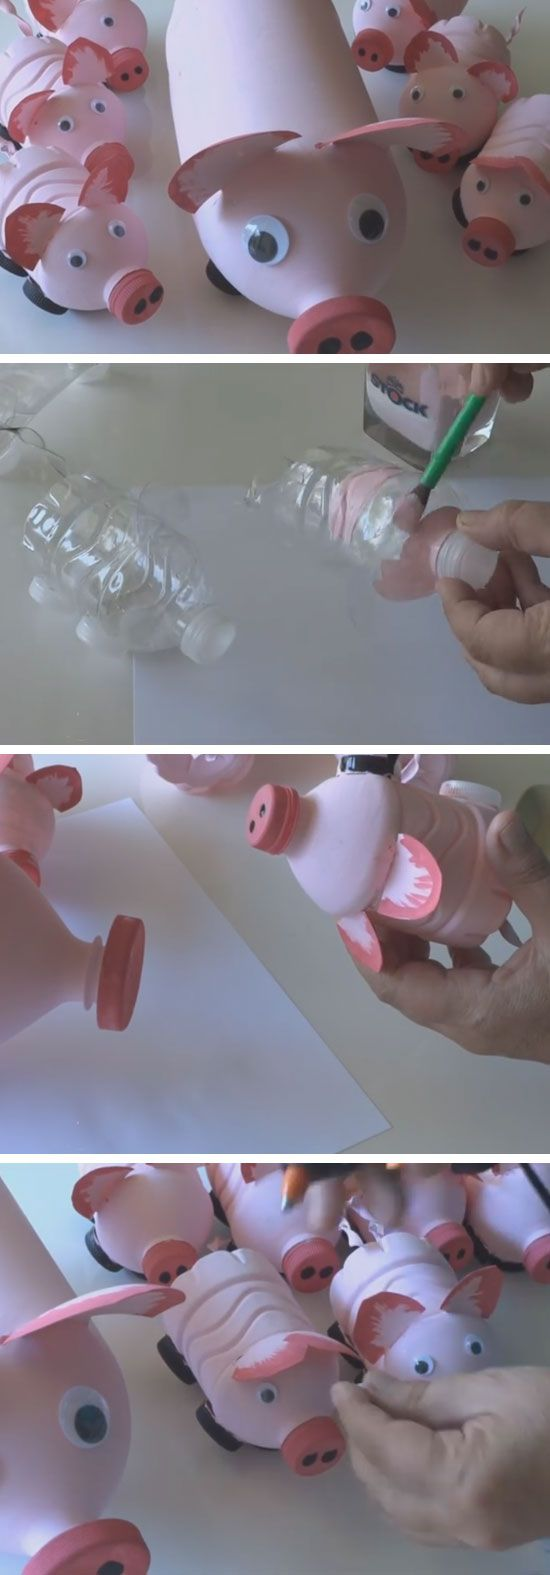 Pig's Family from Plastic Bottles | 18 DIY Summer Art Projects for Kids to Make | Easy Art Projects for Toddlers